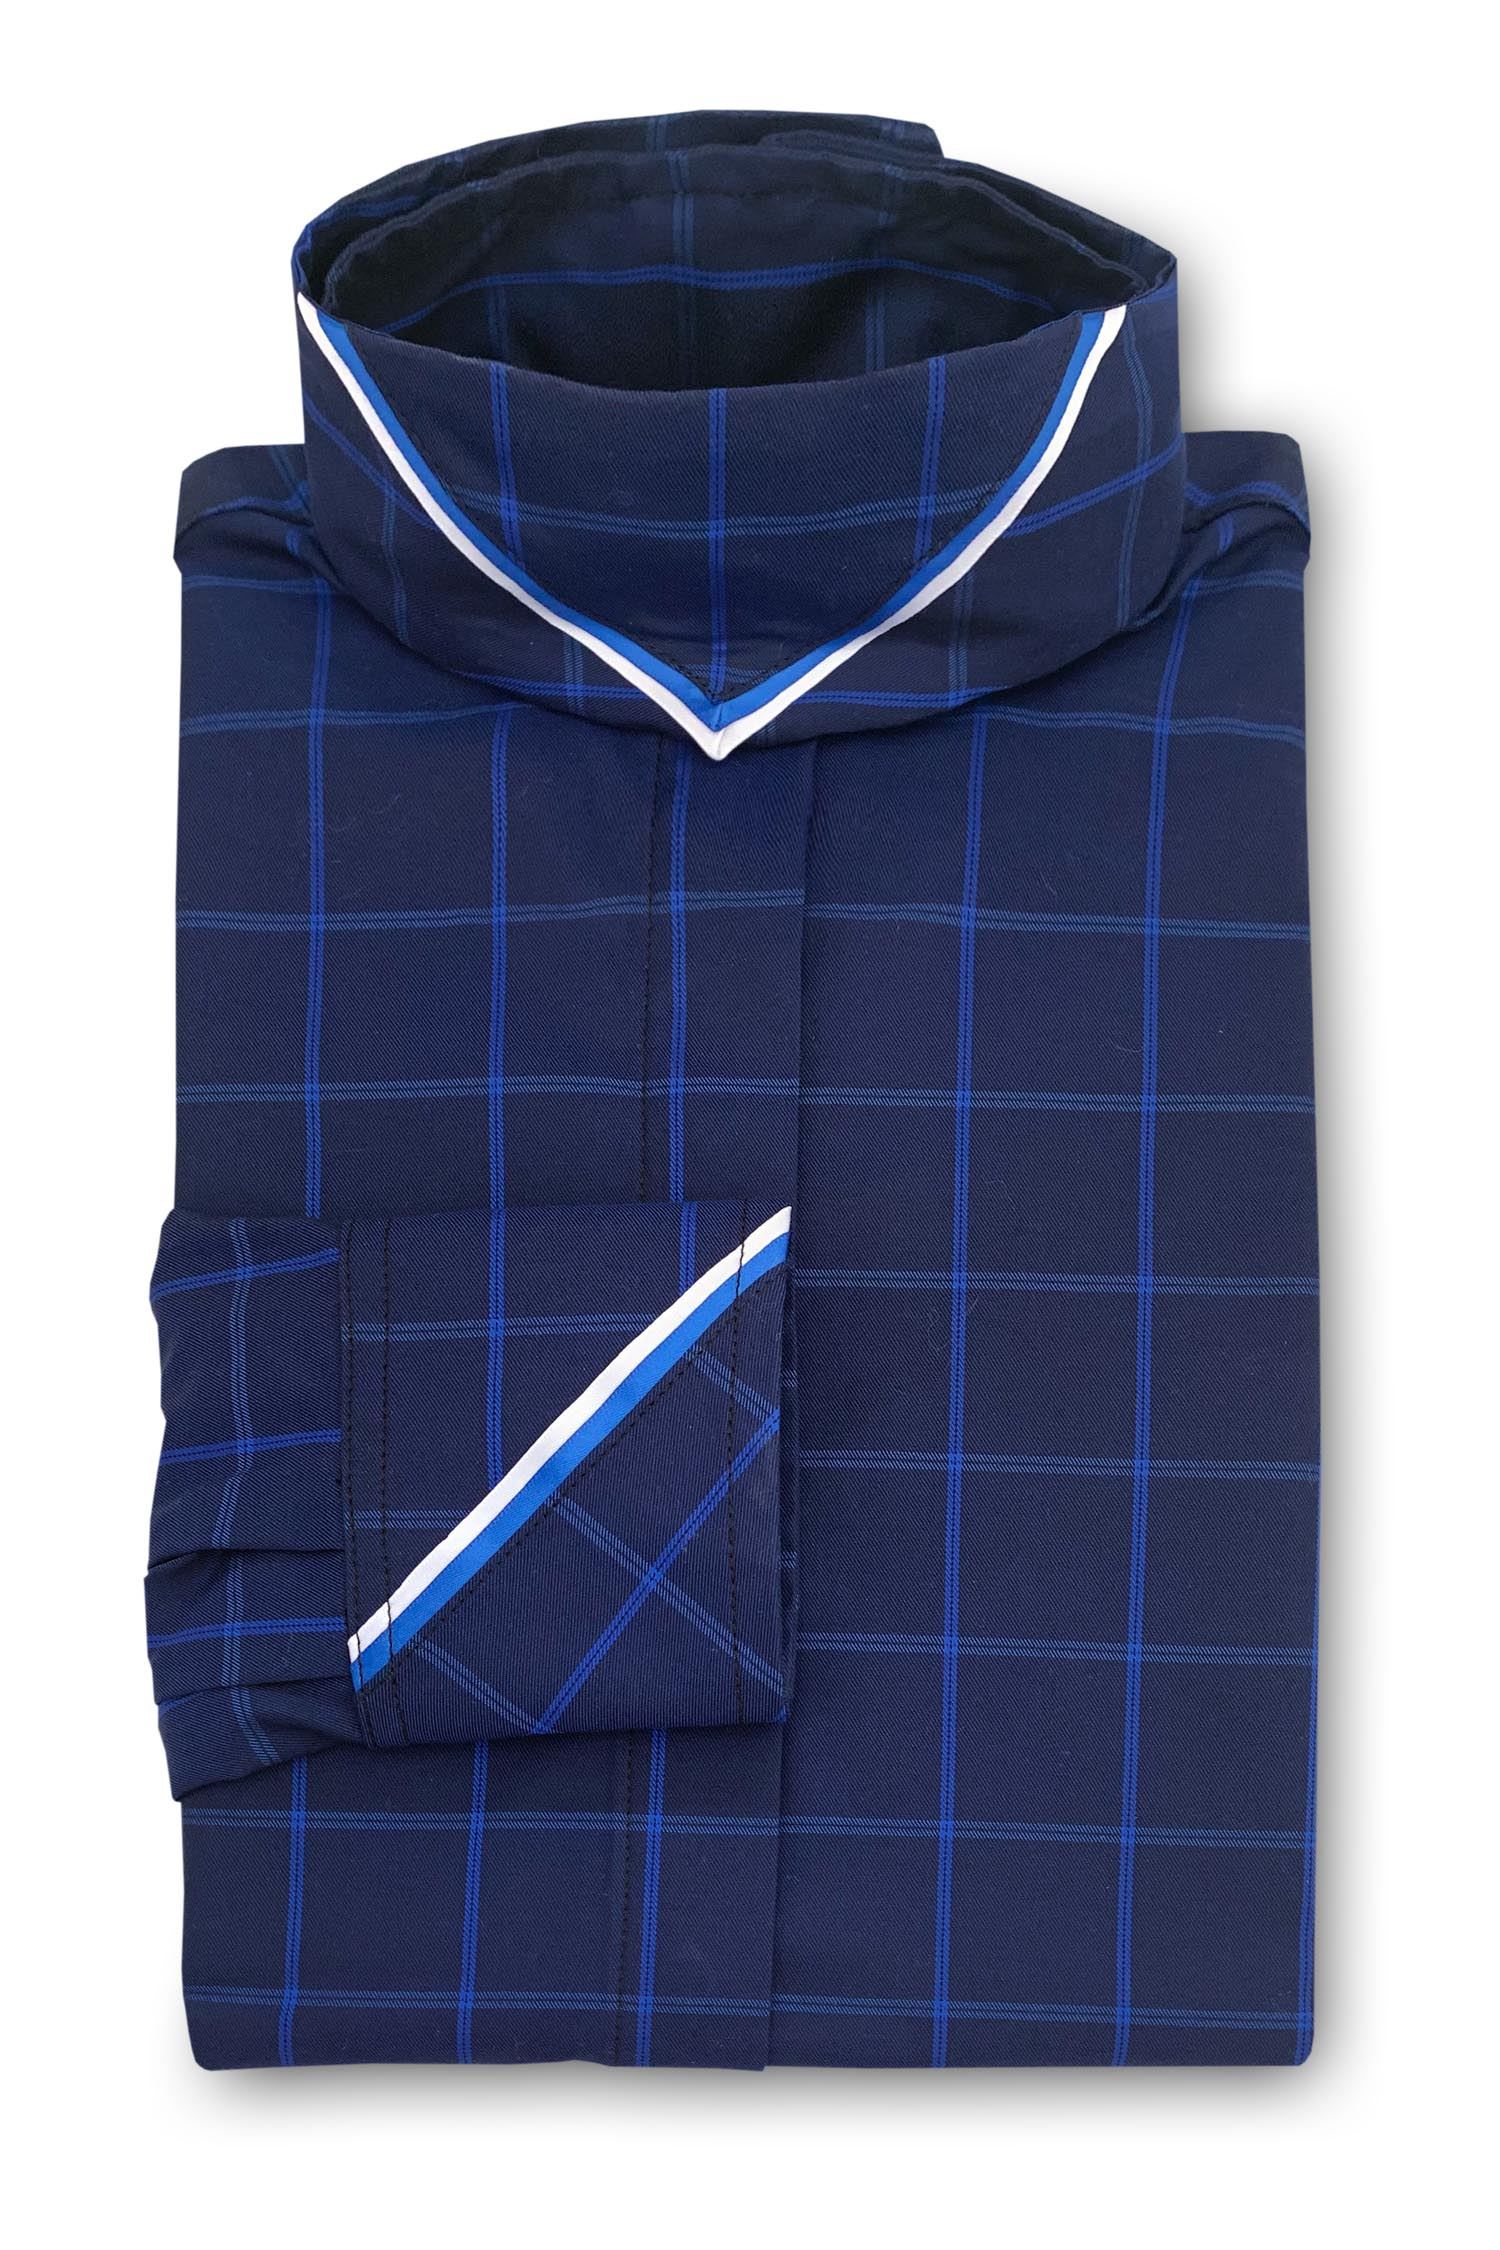 Sapphire Blue Plaid - White & Royal Blue